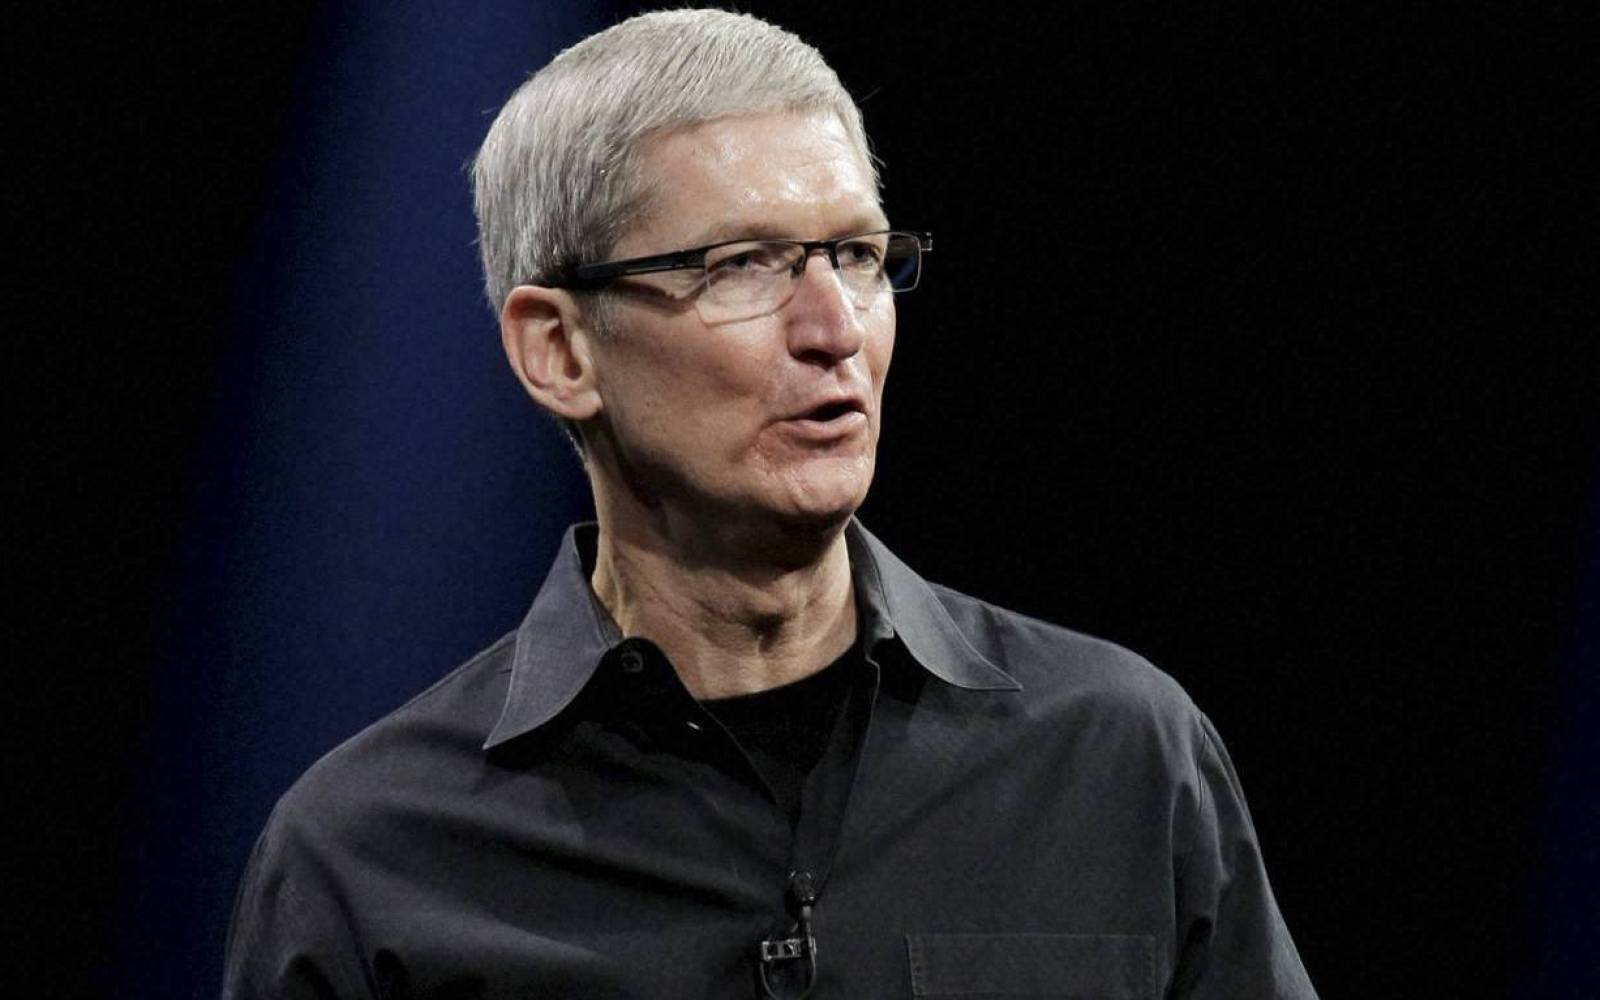 Tim Cook scheduled to speak at White House cybersecurity summit this Friday